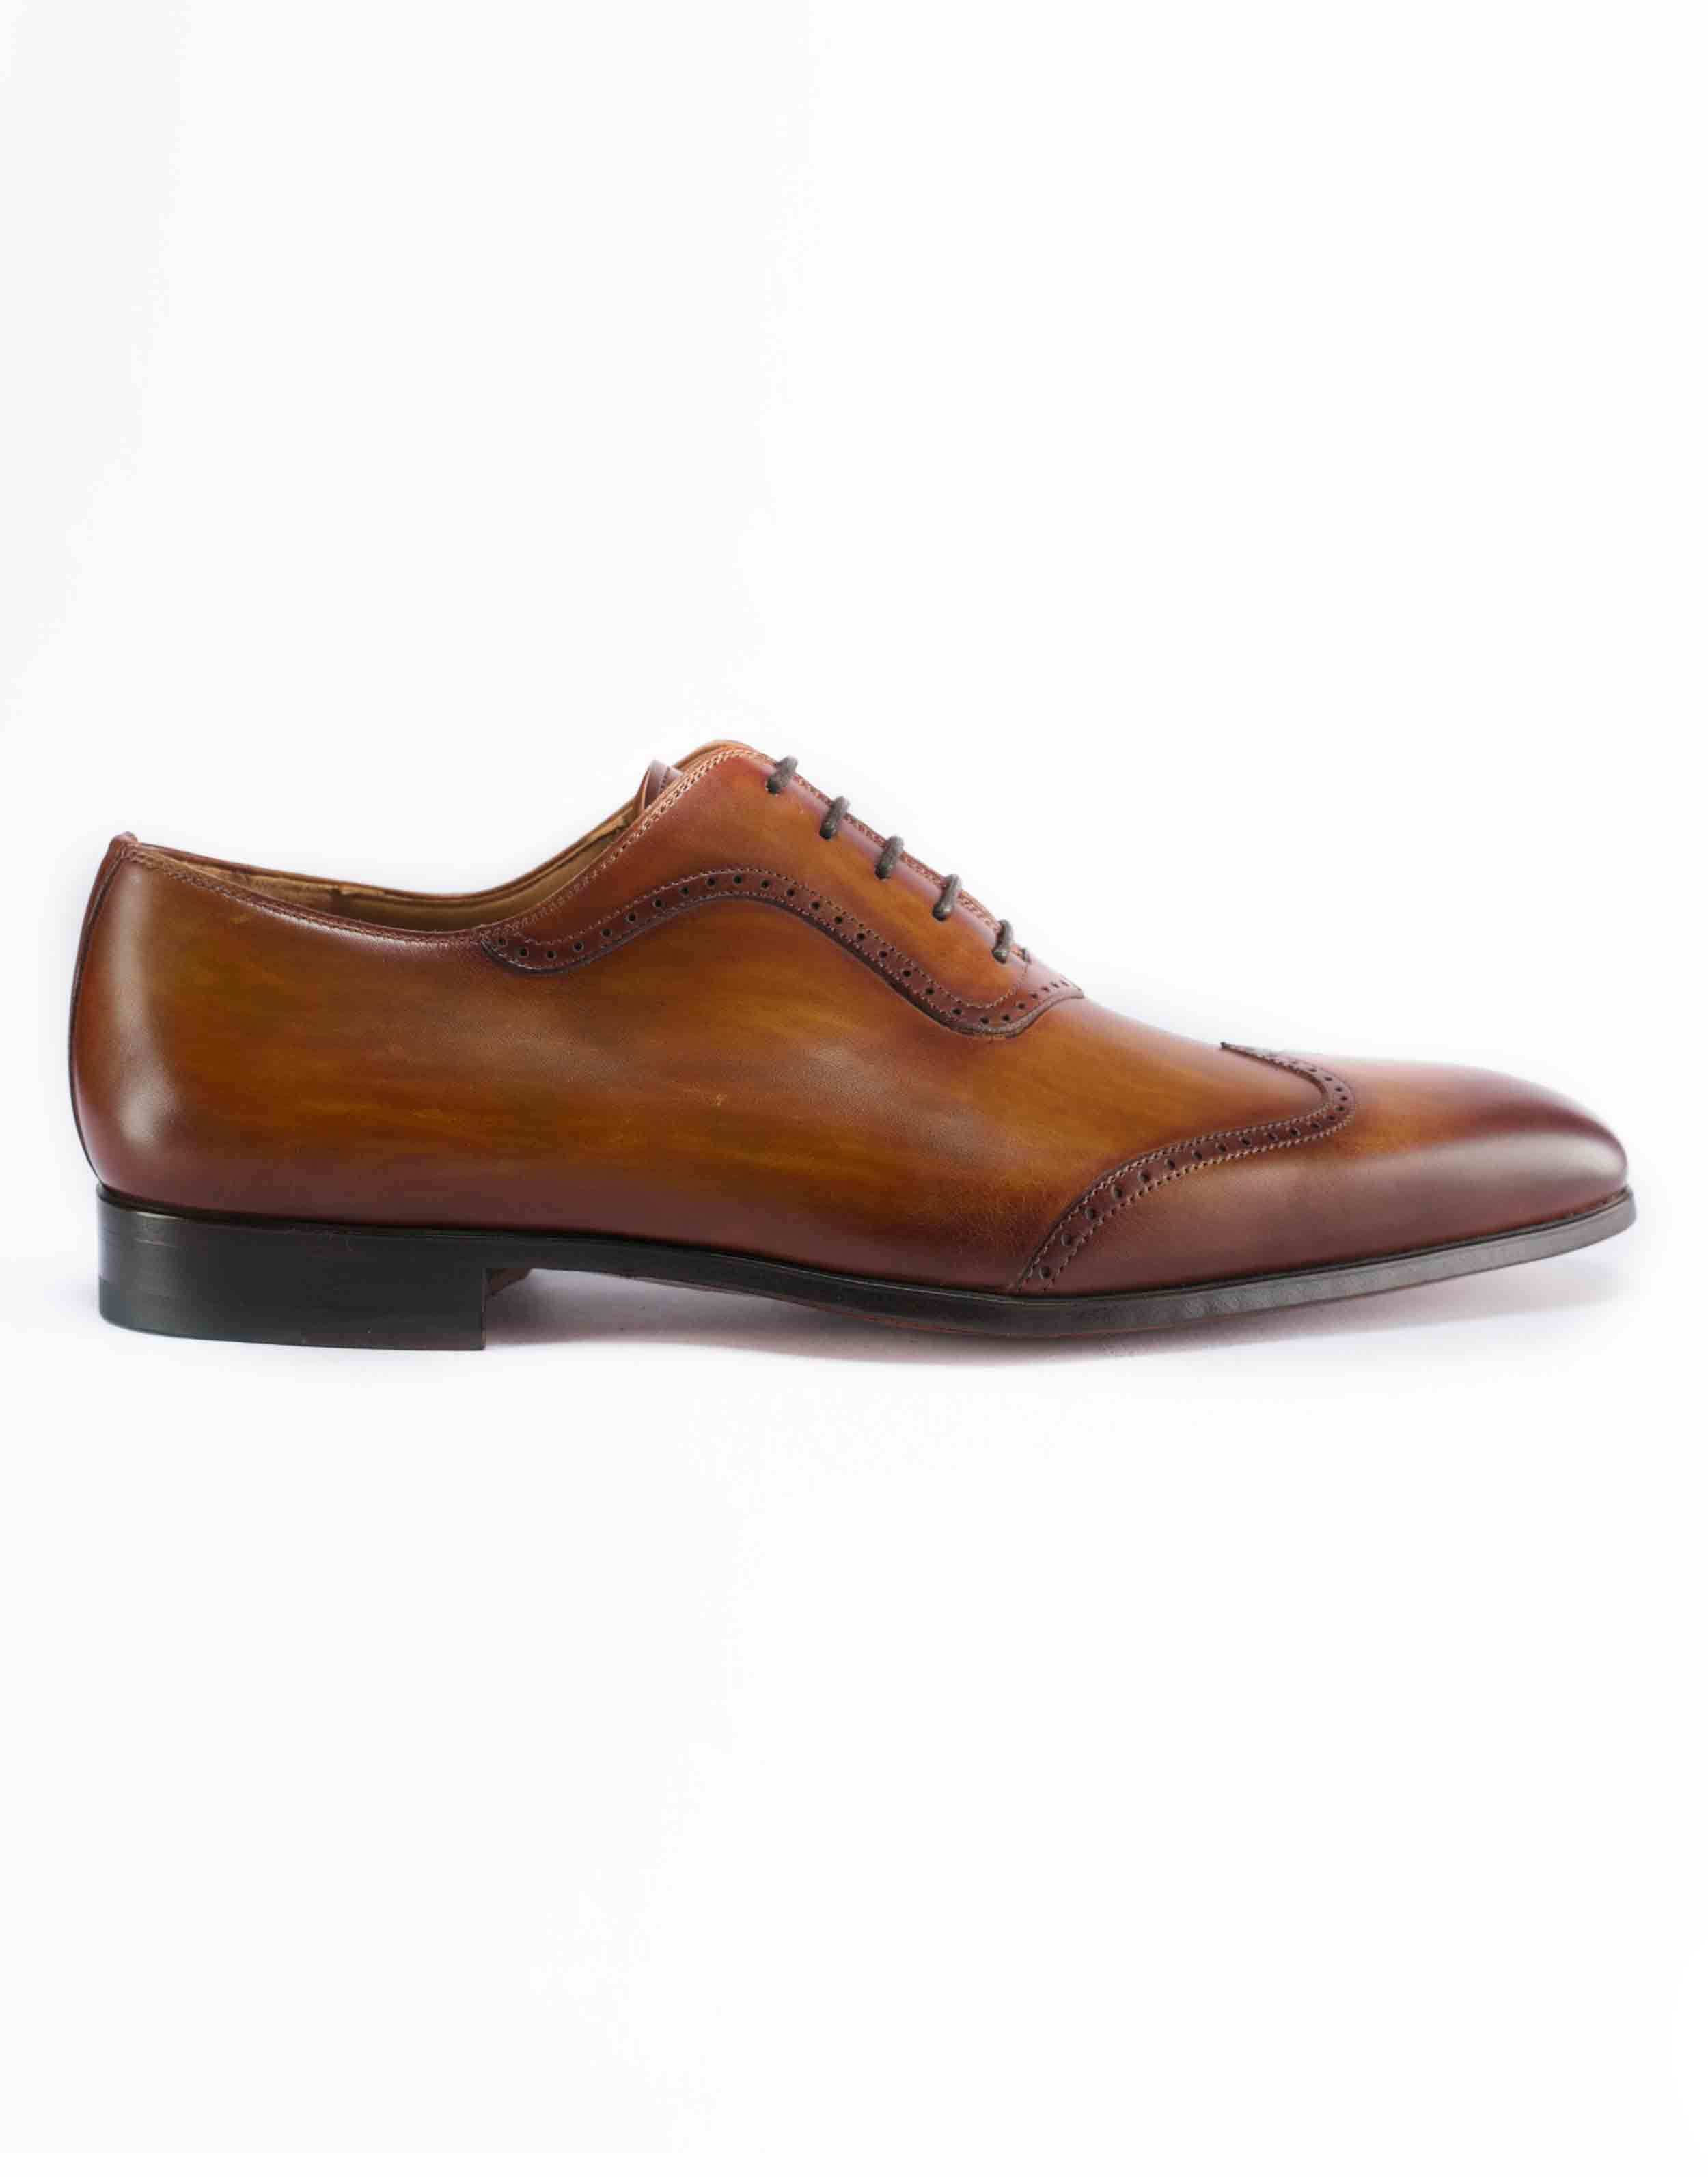 CUERO WINGTIP OXFORDS1